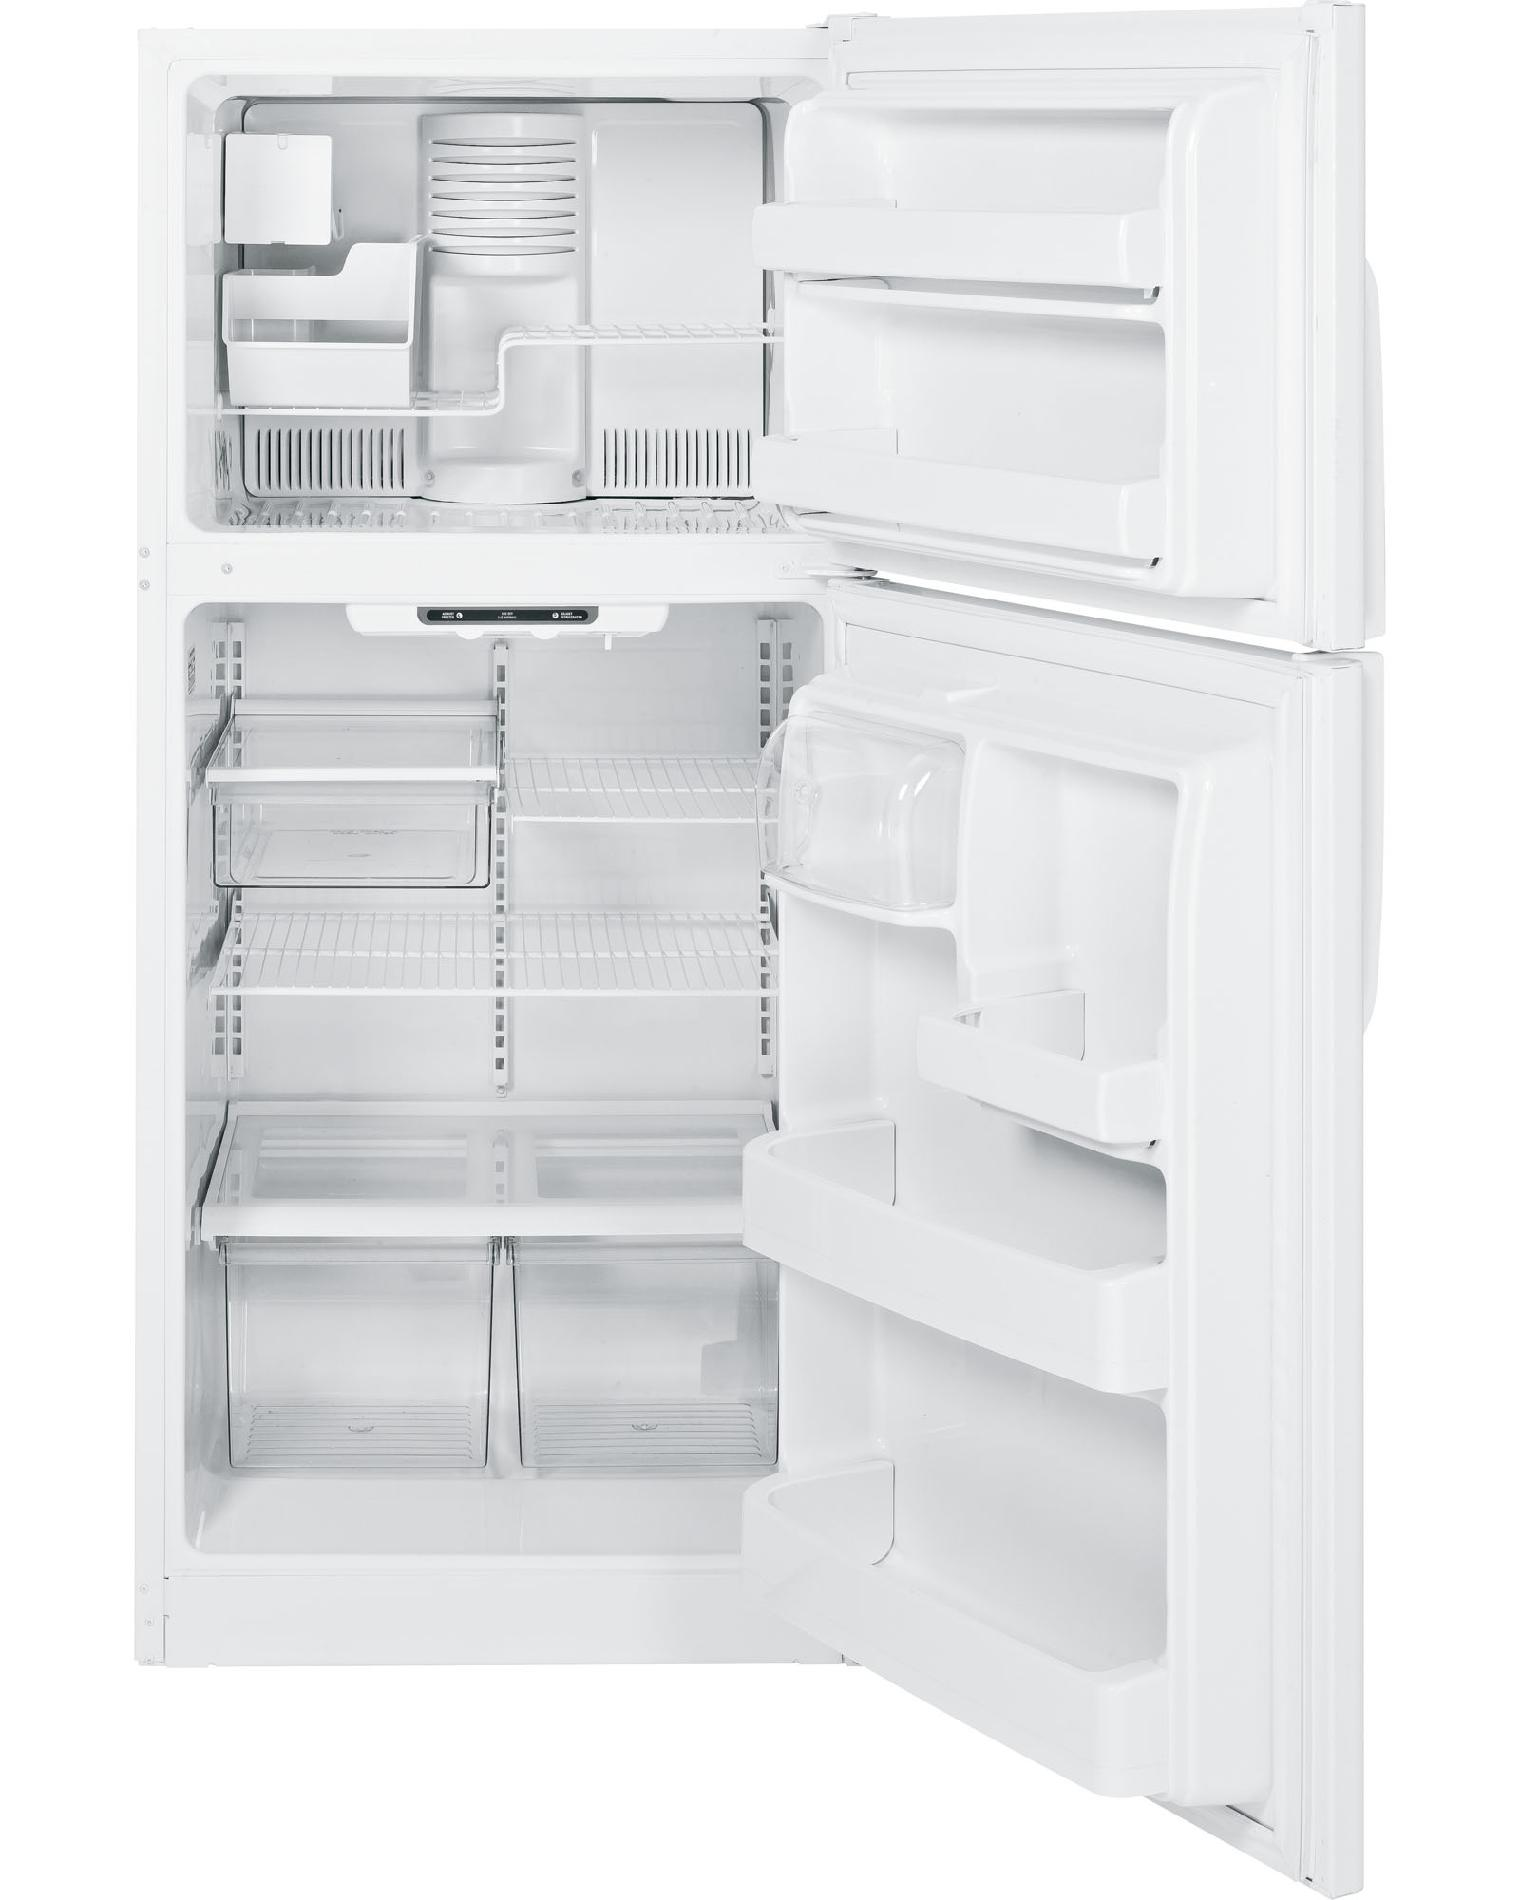 GE 18.0 cu. ft. Top-Freezer Refrigerator  w/ Ice Maker - White